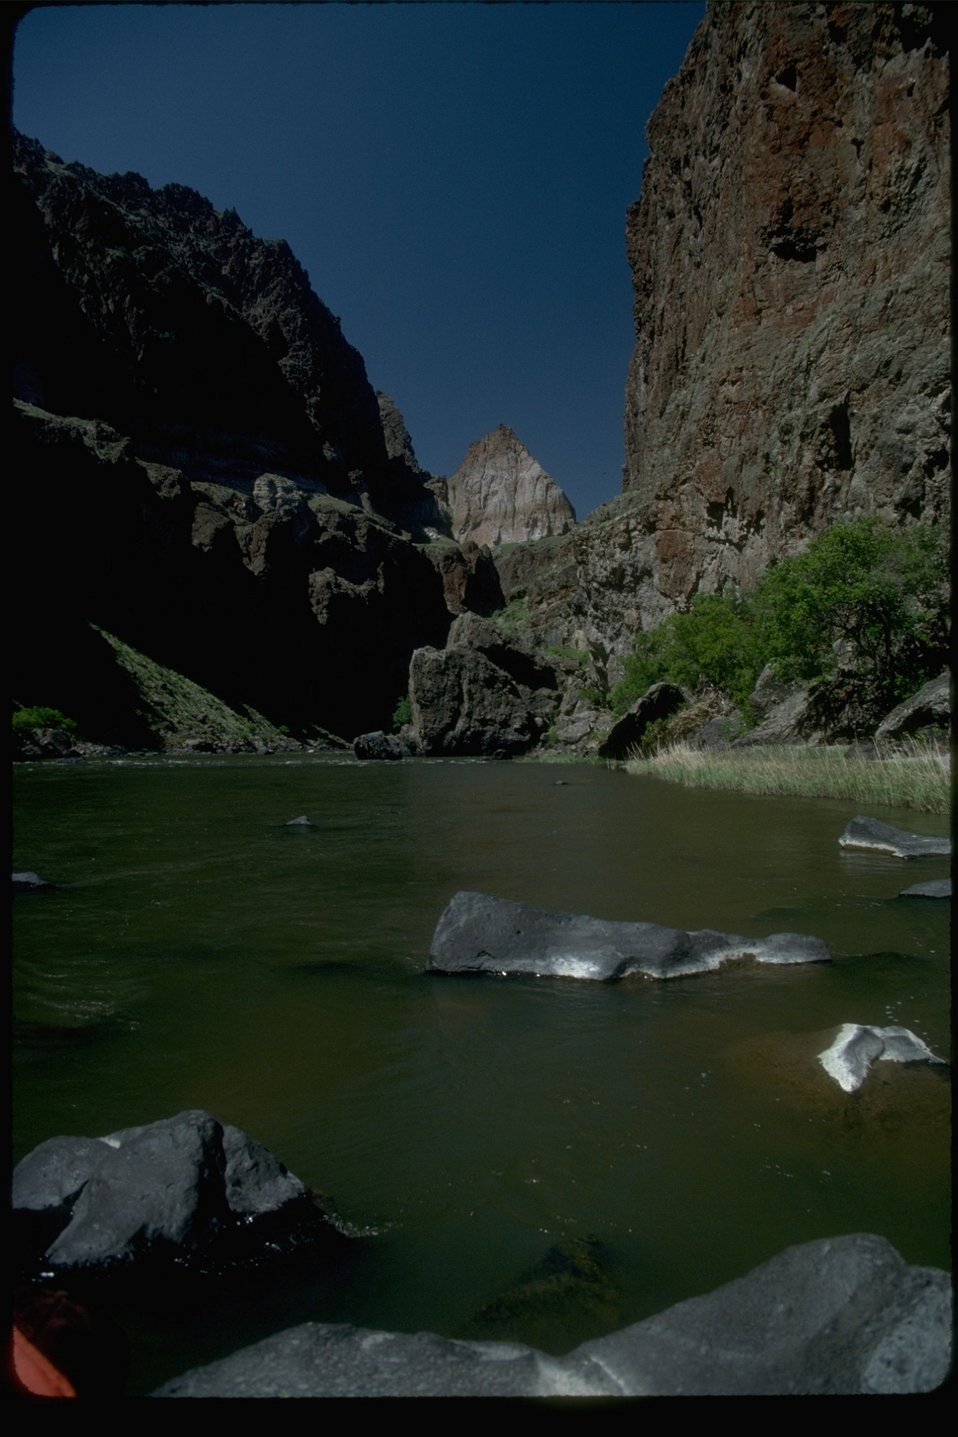 View of Lower Owyhee Canyon at River level.  OR 3-110